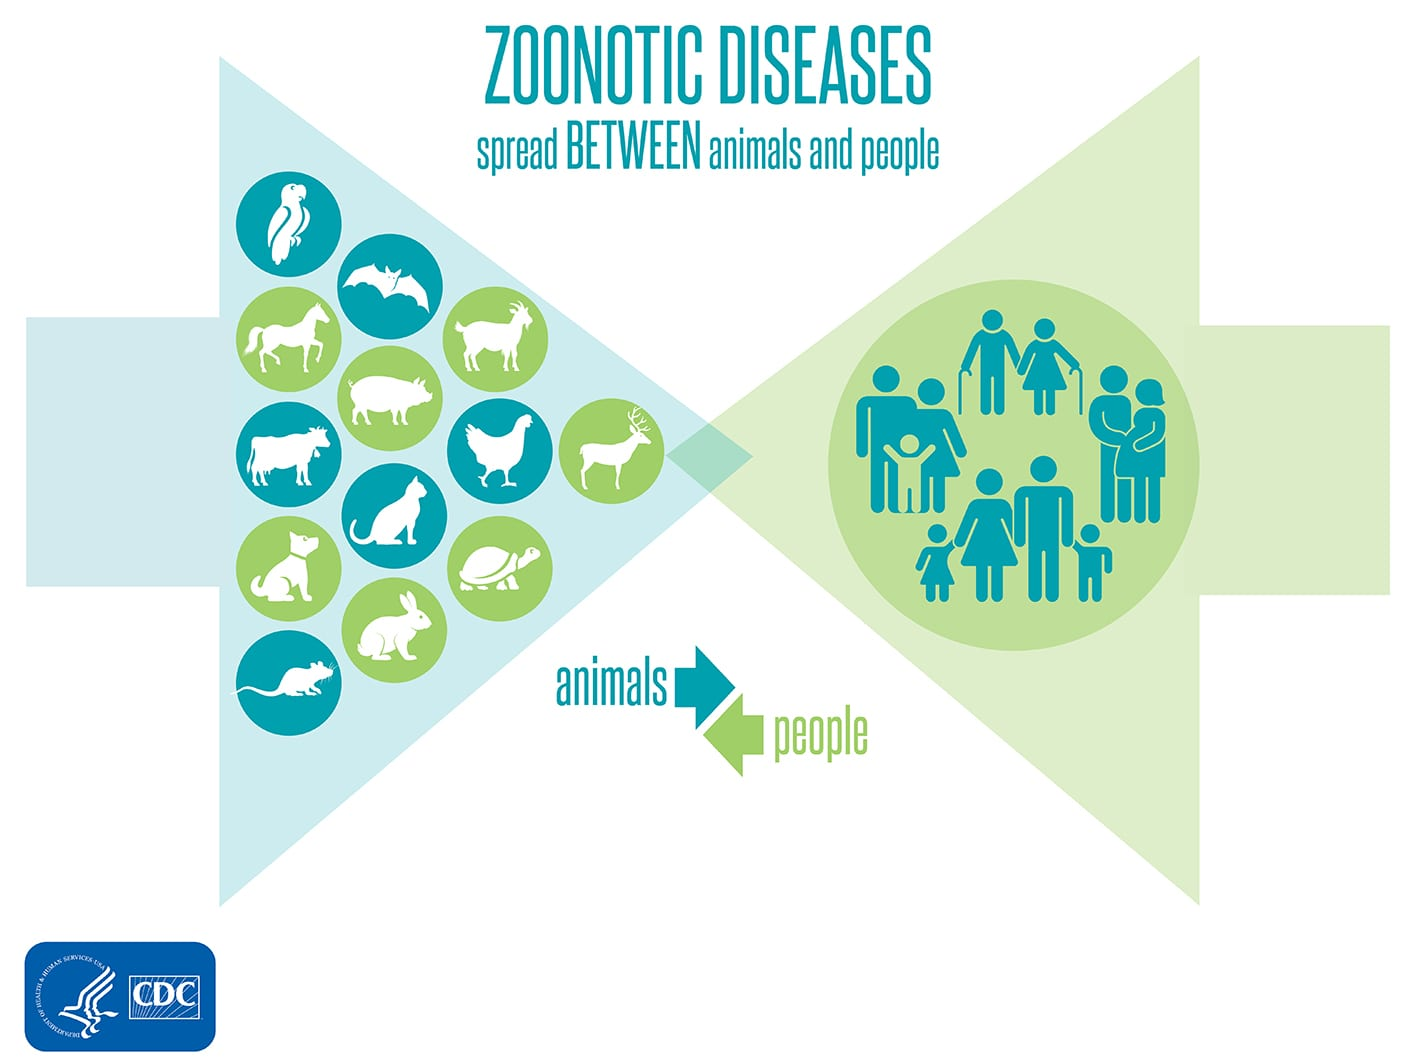 Zoonotic diseases spread between animals and people infographic